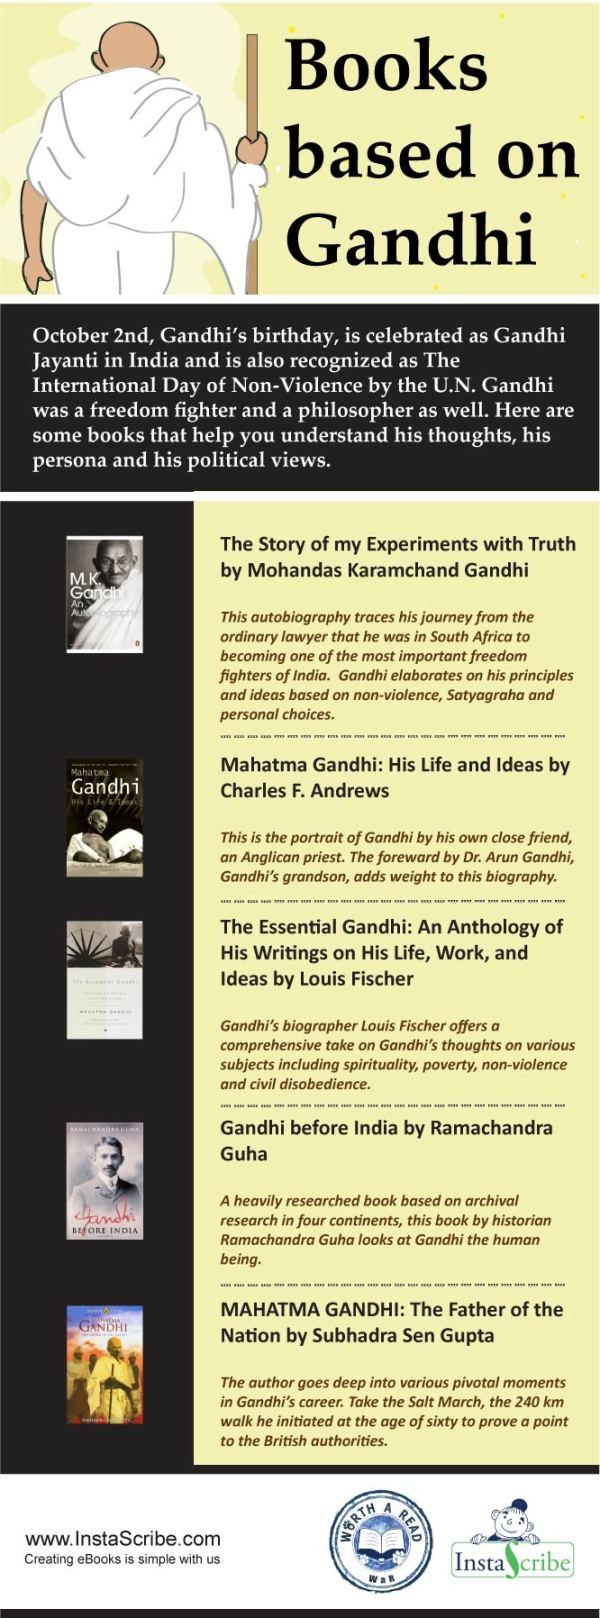 Books based on Gandhi